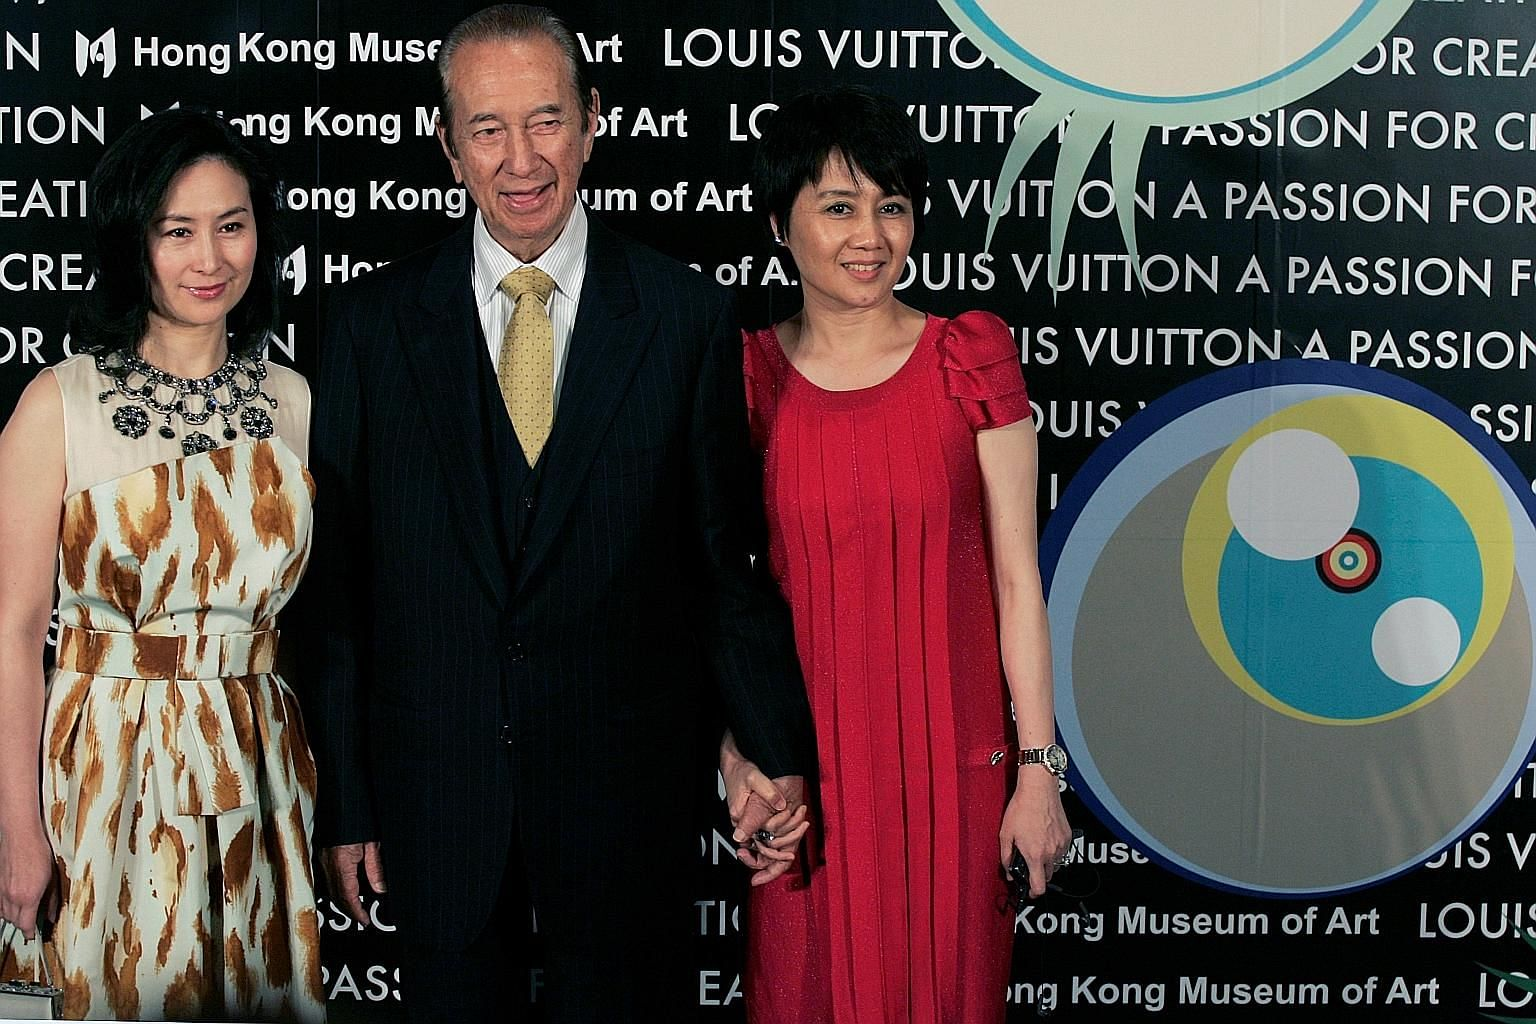 Macau gambling king Stanley Ho in 2009 with his daughter Pansy (left) and wife Angela Leong. The flamboyant tycoon, who loved to dance and advised his nearest and dearest to shun gambling, headed one of the world's most lucrative gaming businesses th